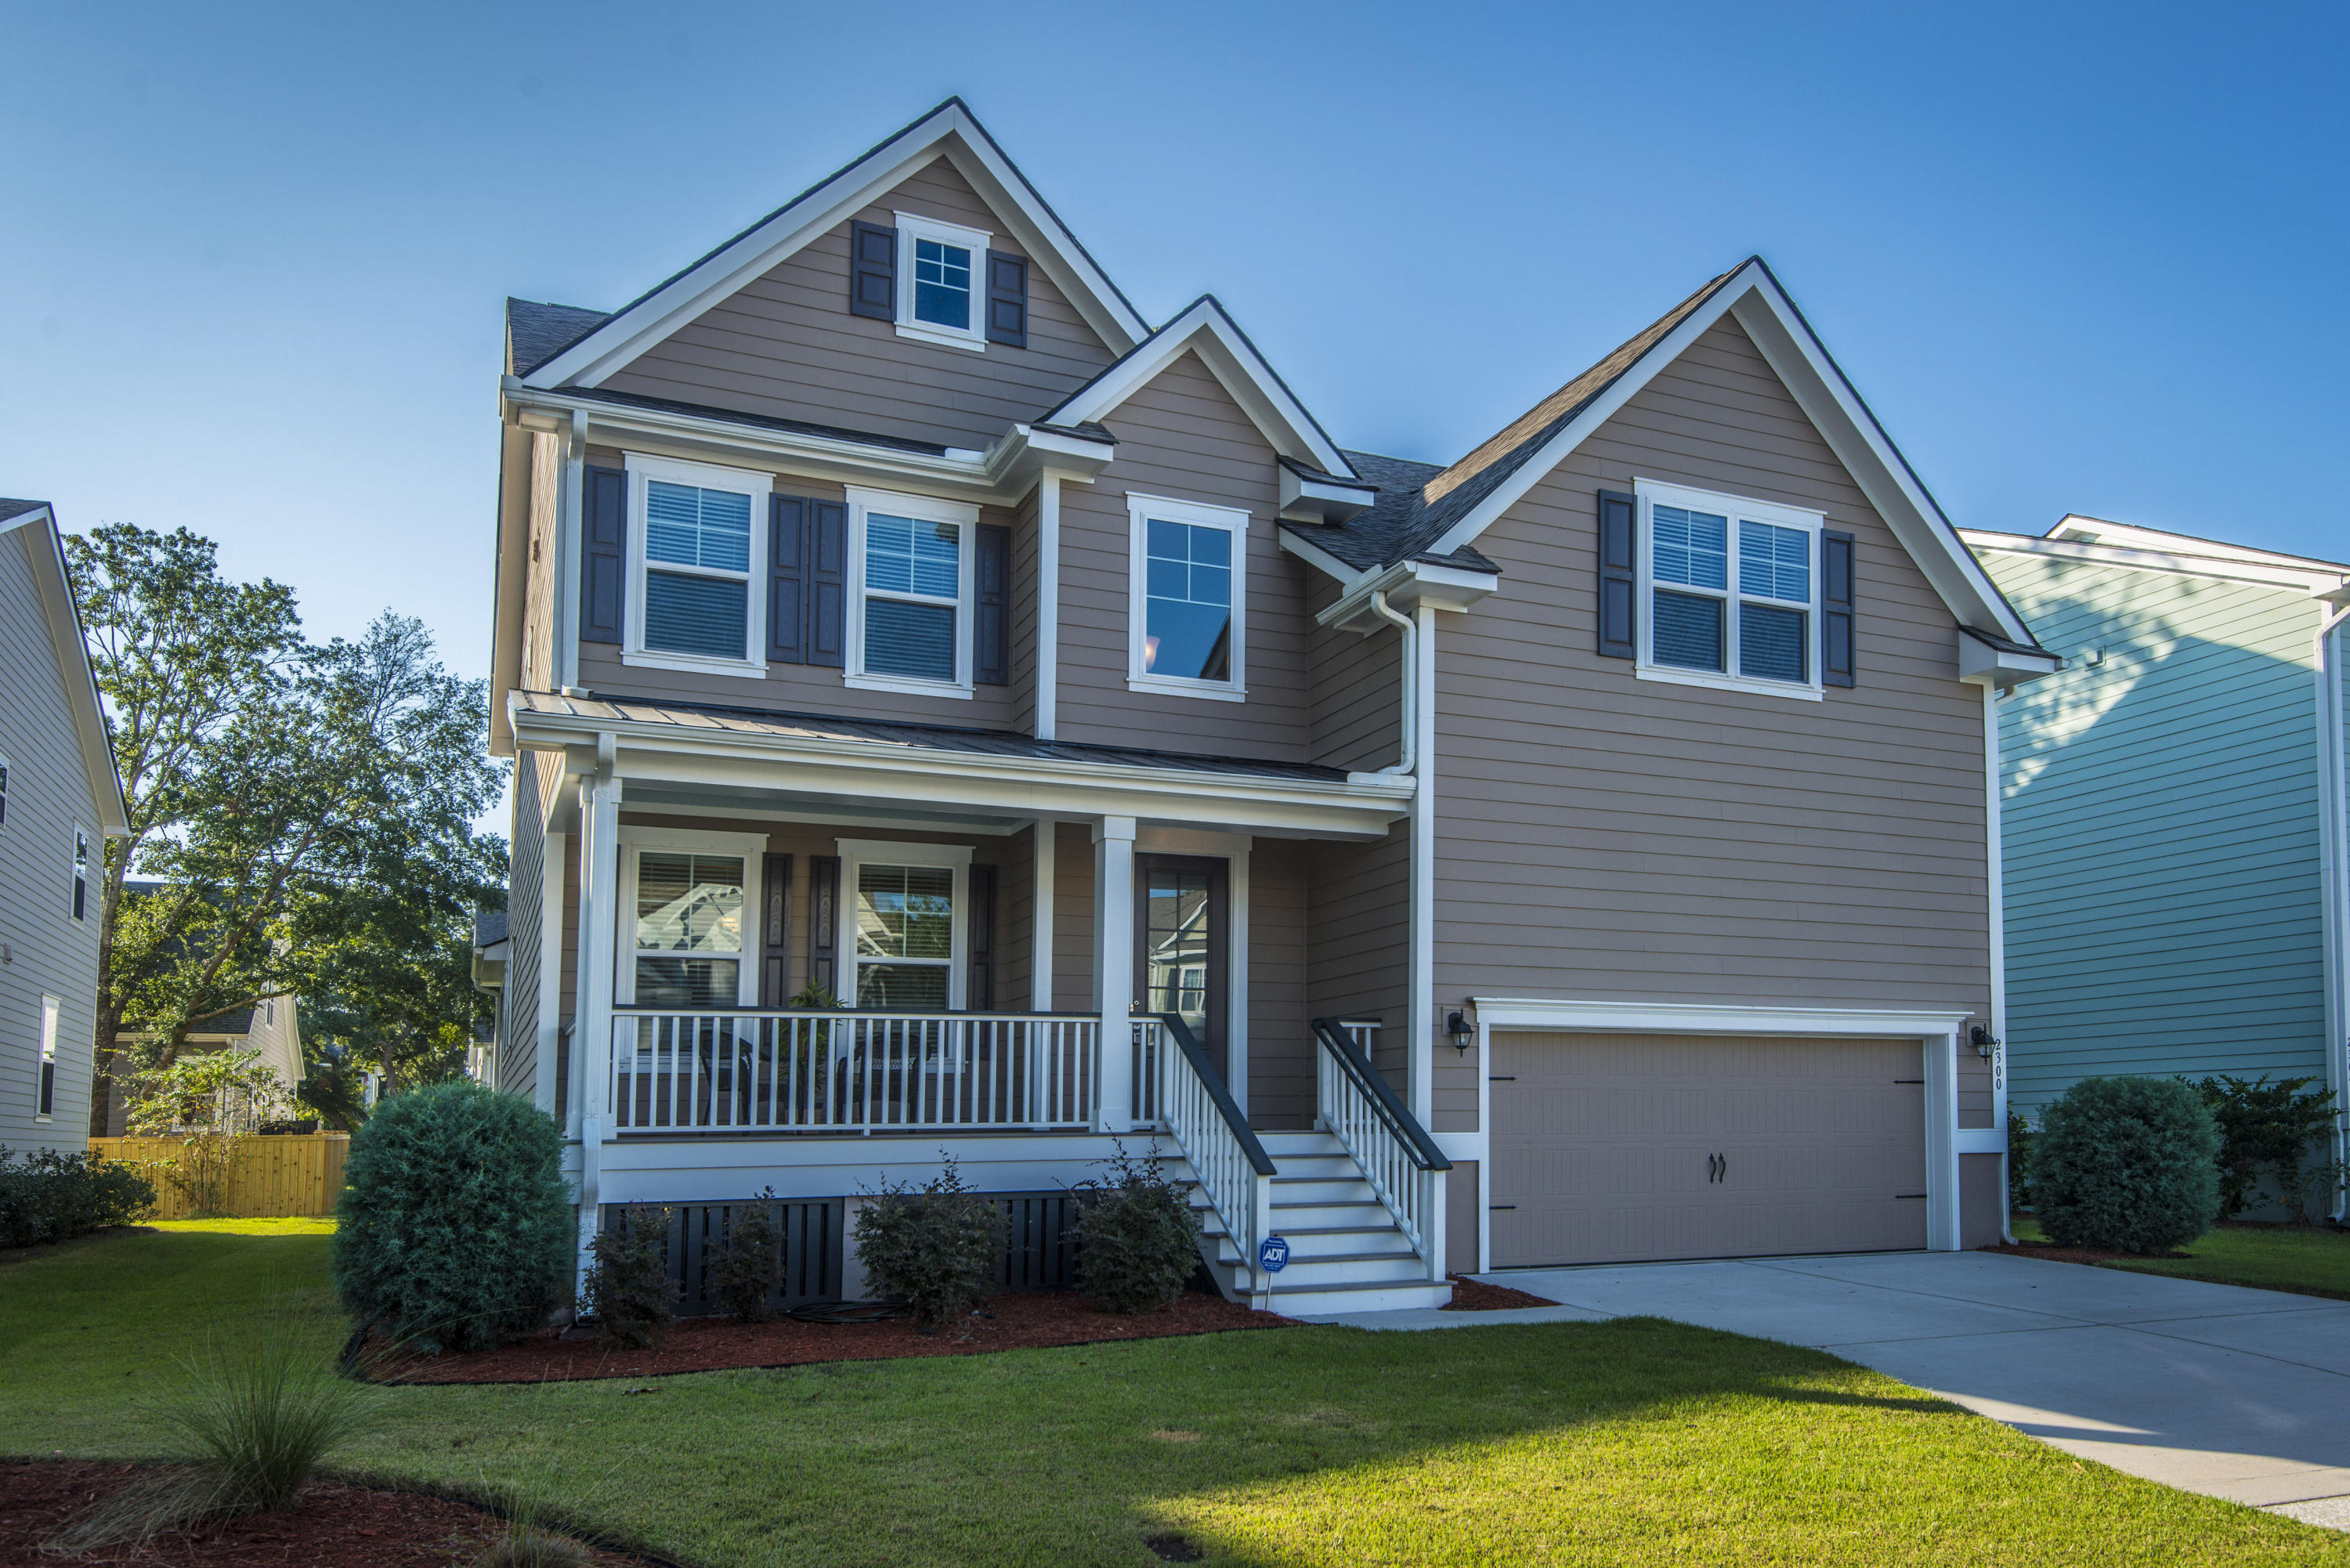 Oyster Point Homes For Sale - 2300 Skyler, Mount Pleasant, SC - 3